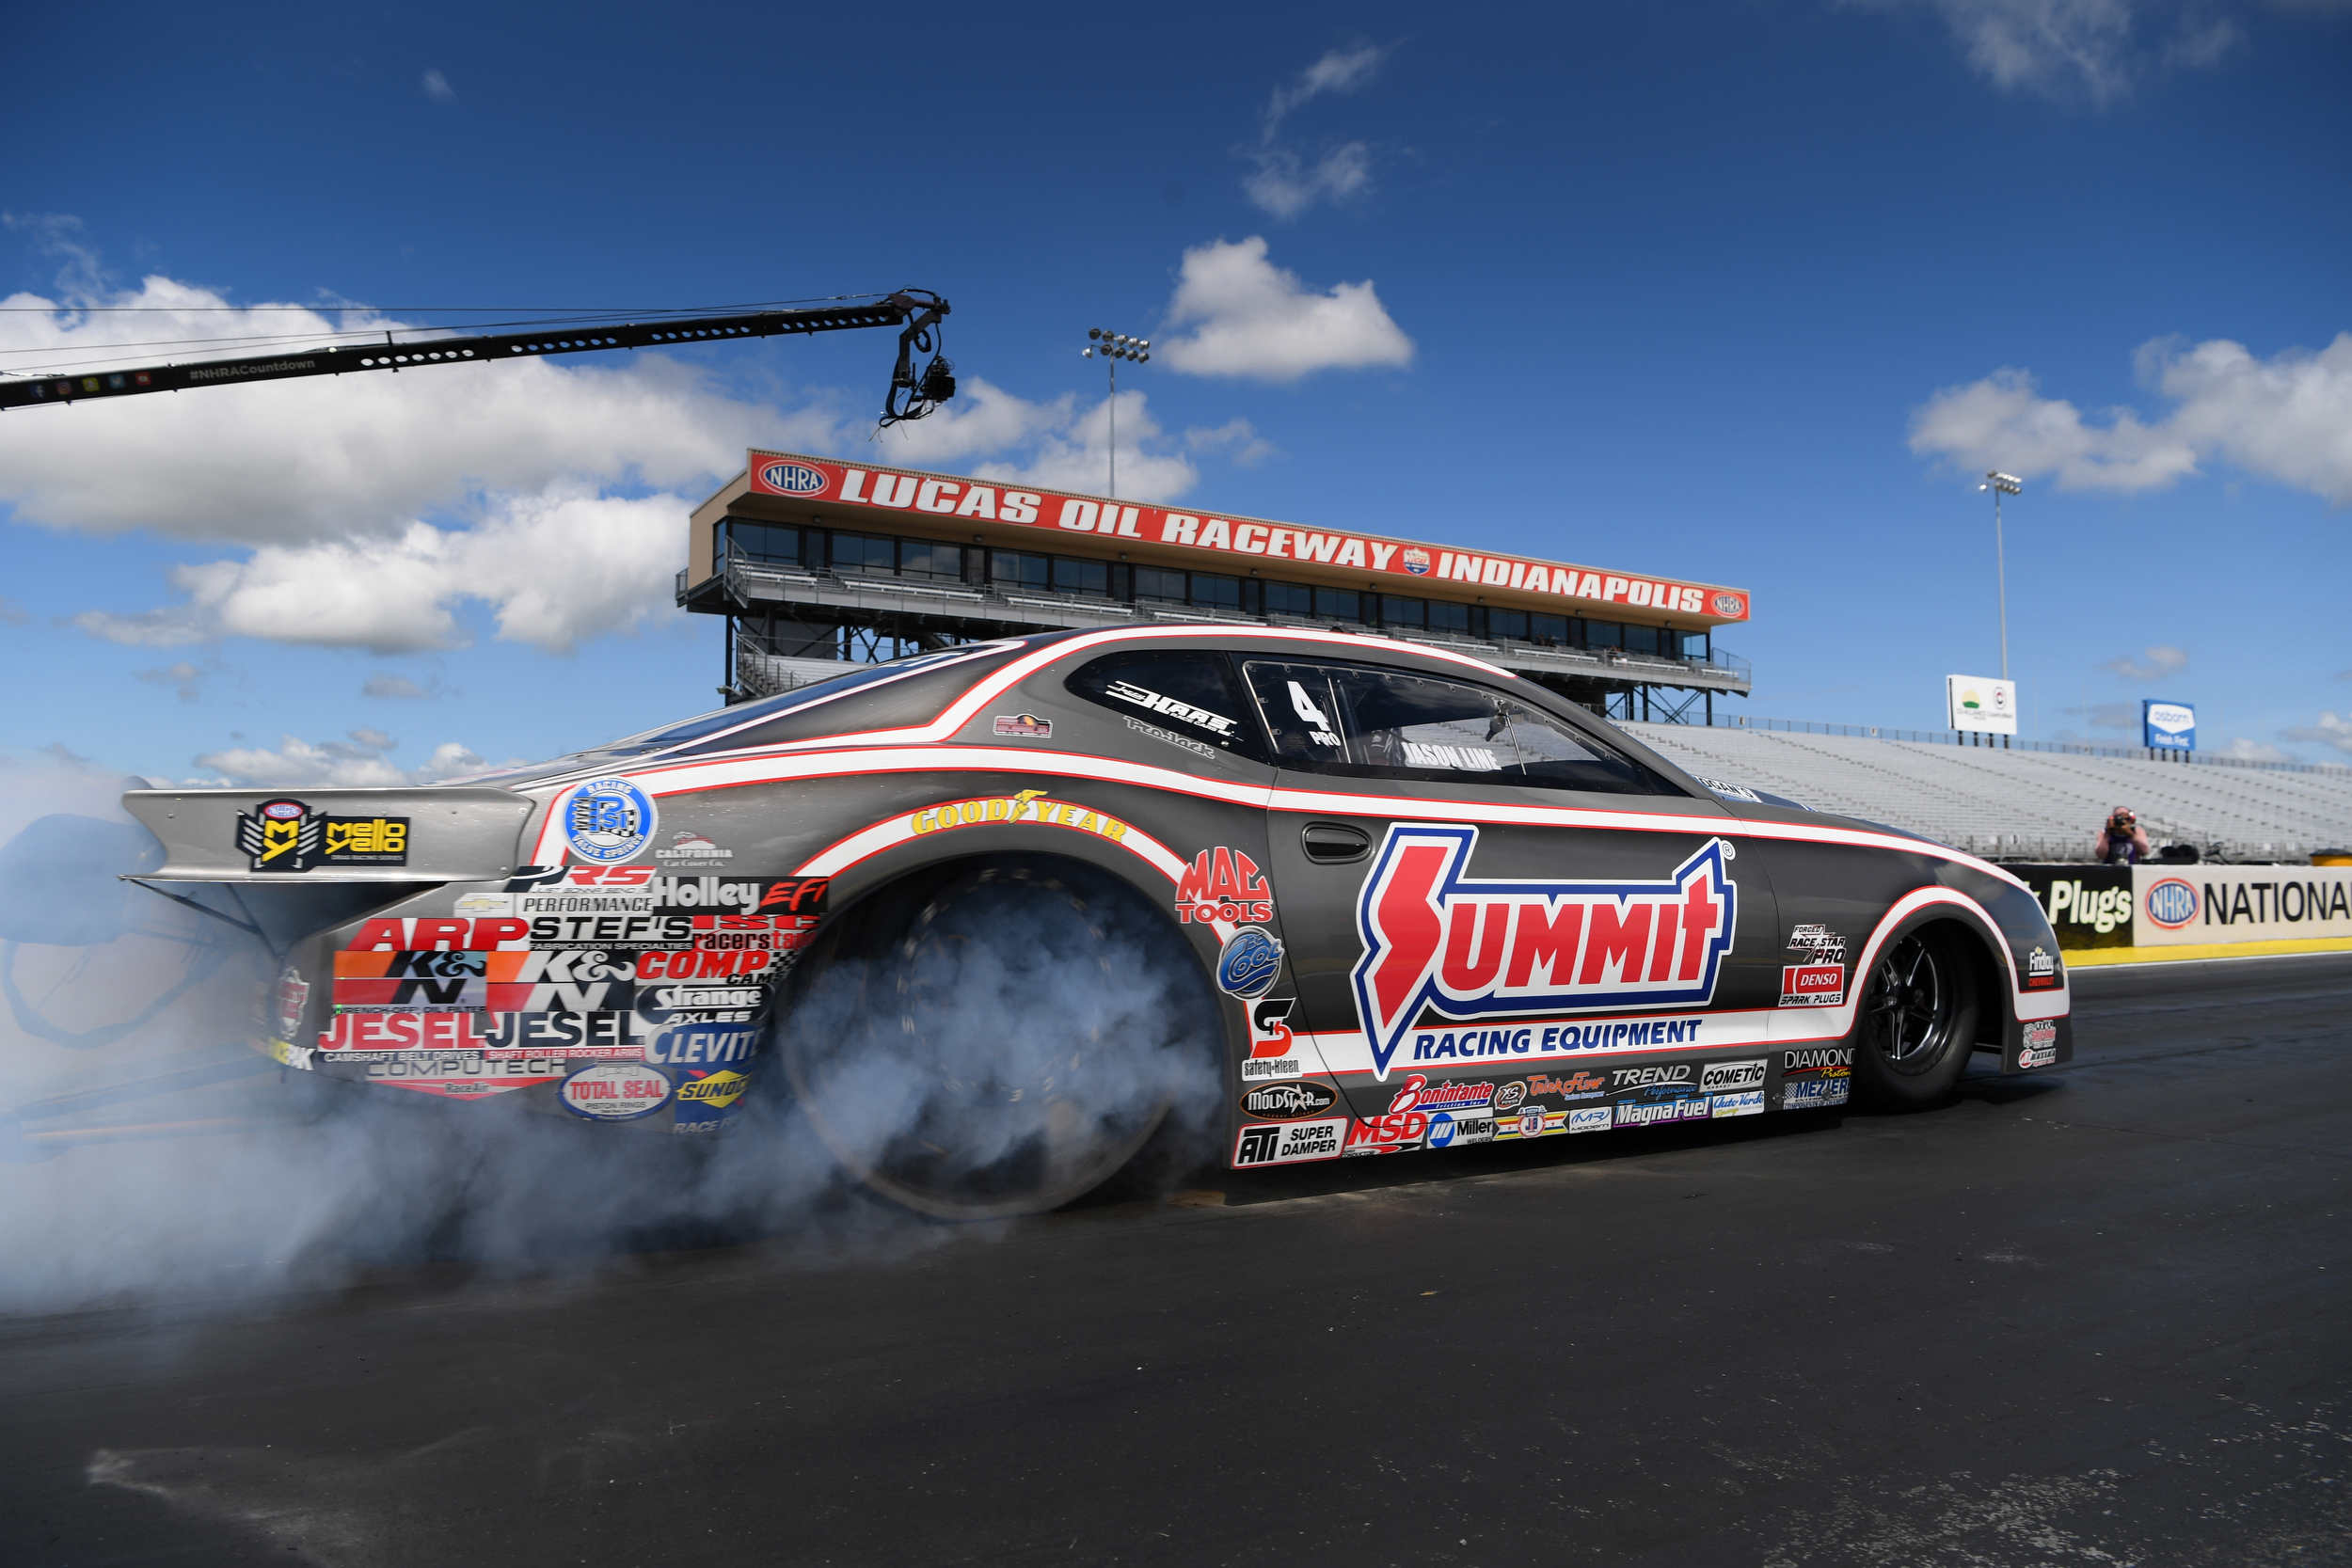 Summit Racing Equipment Pro Stock driver Jason Line racing on Sunday at the E3 Spark Plugs NHRA Nationals